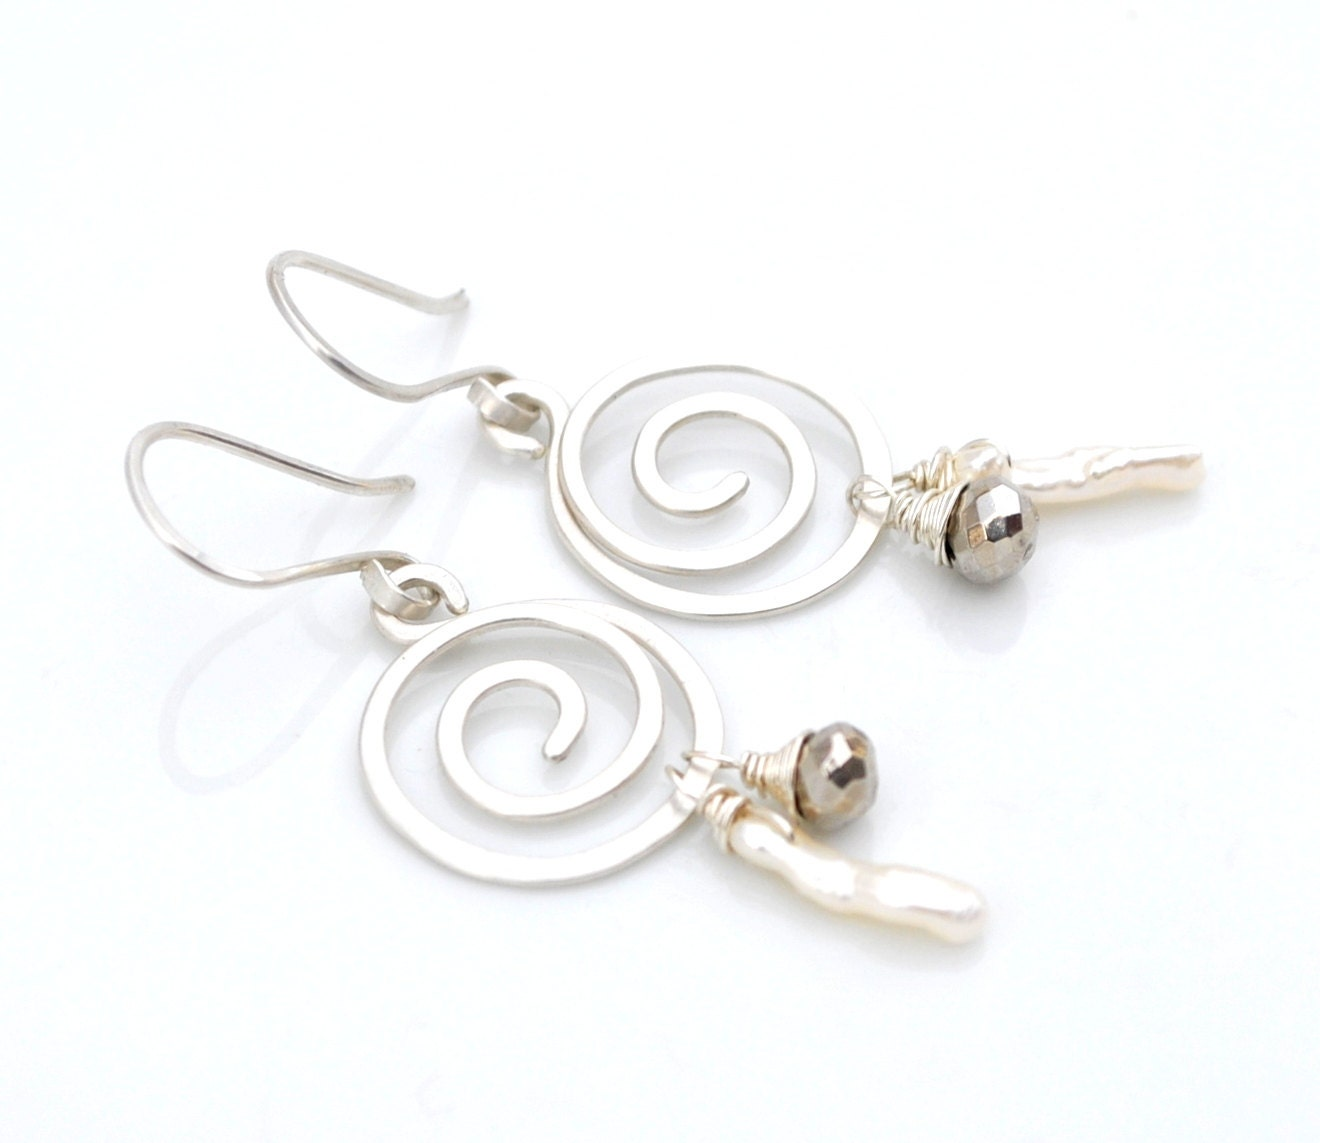 Freshwater Pearl Stick and Golden Pyrite Spiral Earrings - Sterling Silver Wire Wrapped Gemstone & Pearl Dangles, Gift For Her, Whimsy 2014 - WhimsybyKT